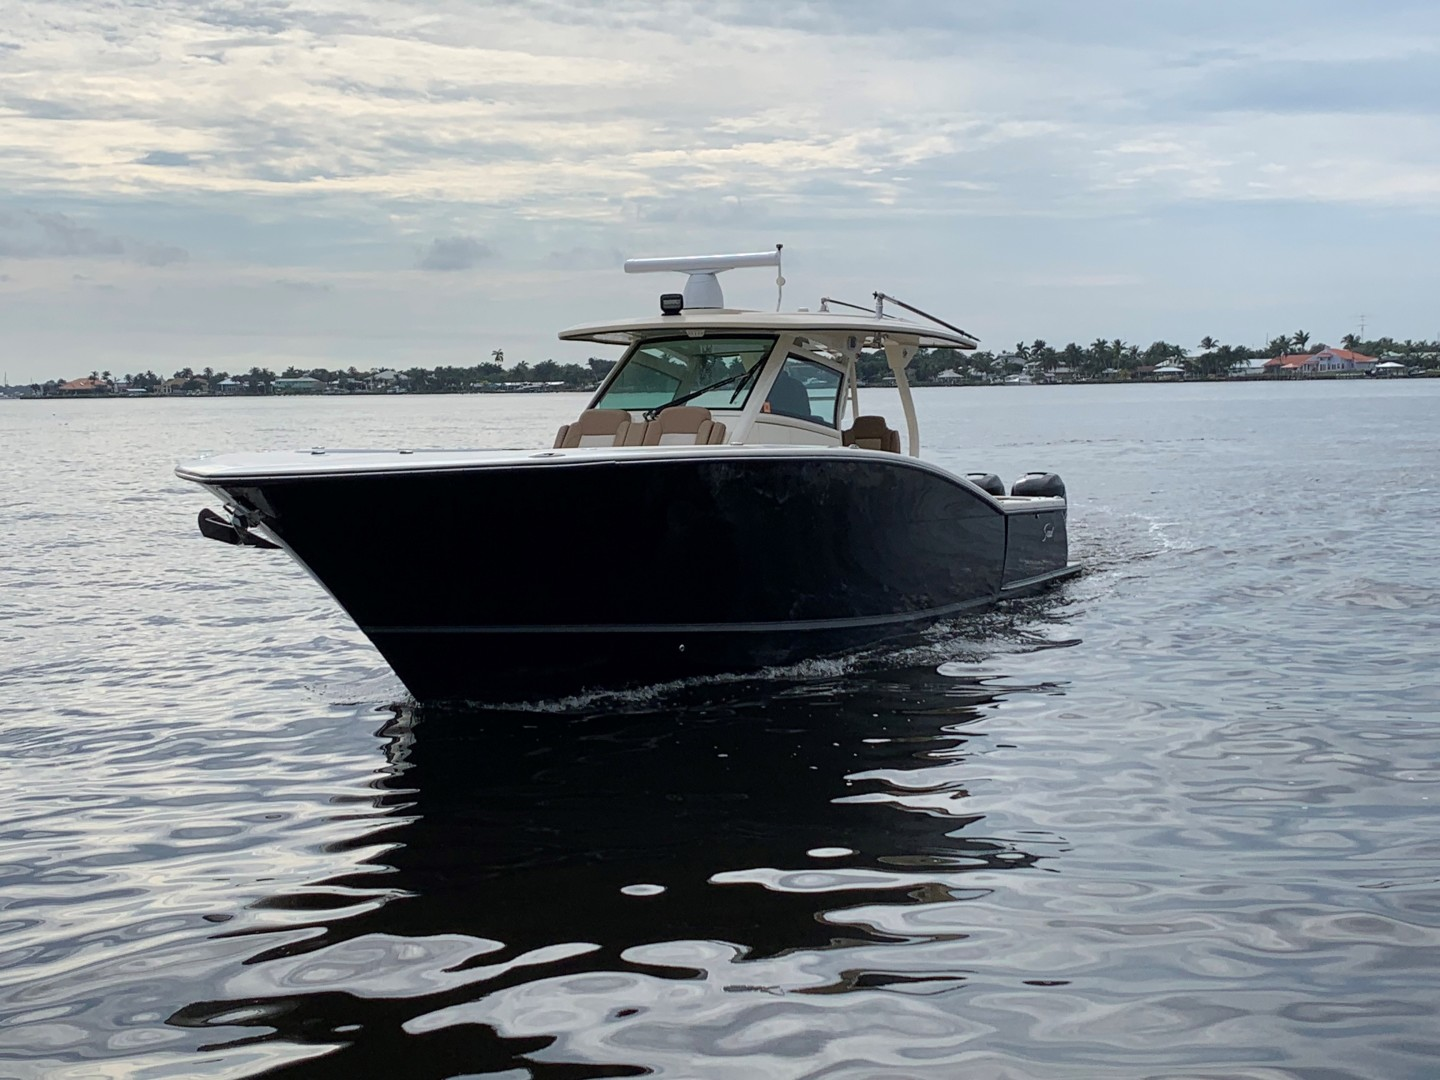 Scout-420 LXF 2016-Scout 420 LXF Delray Beach-Florida-United States-1591339 | Thumbnail